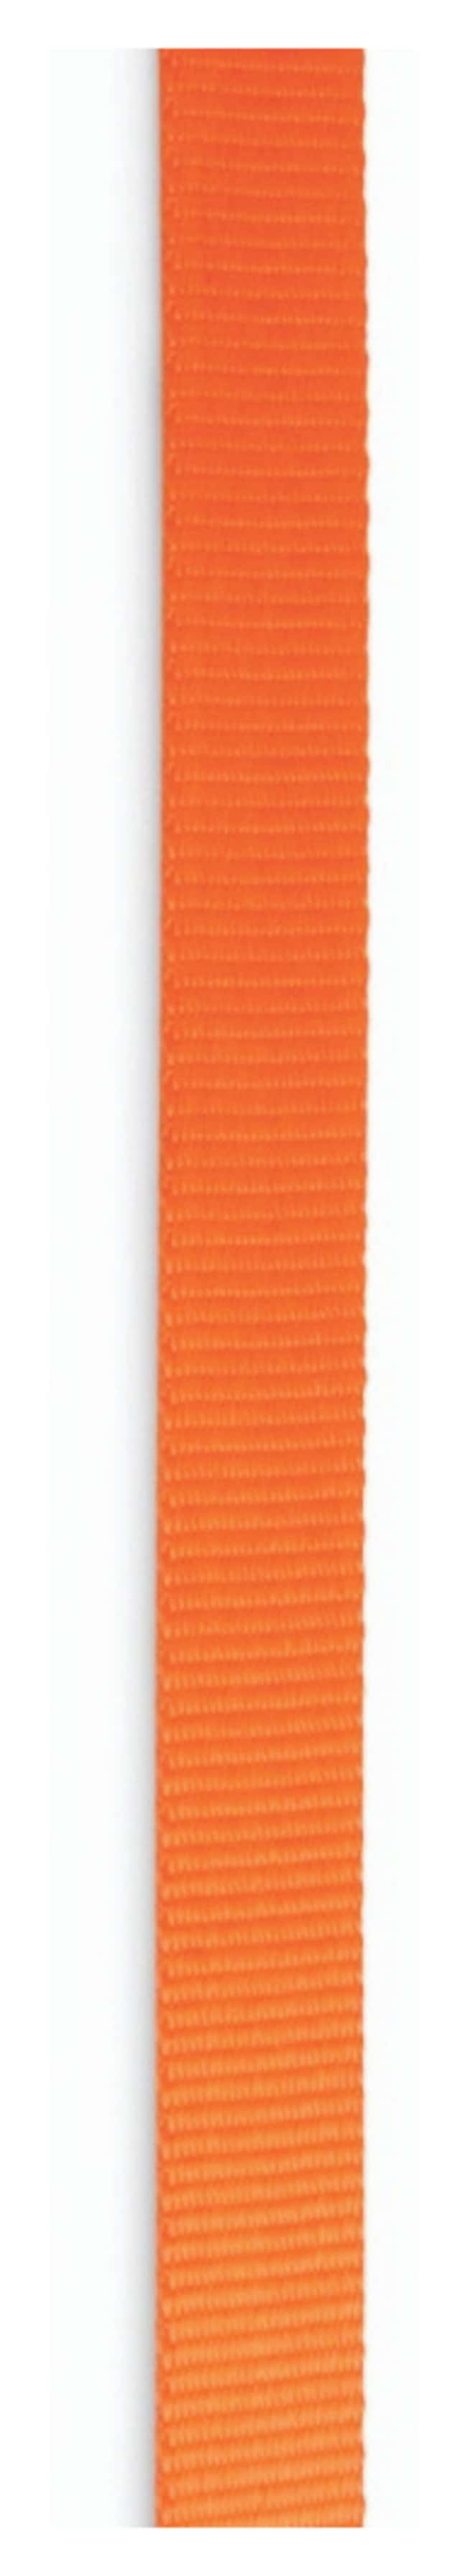 CMC Rescue Flat Webbing Orange:Gloves, Glasses and Safety